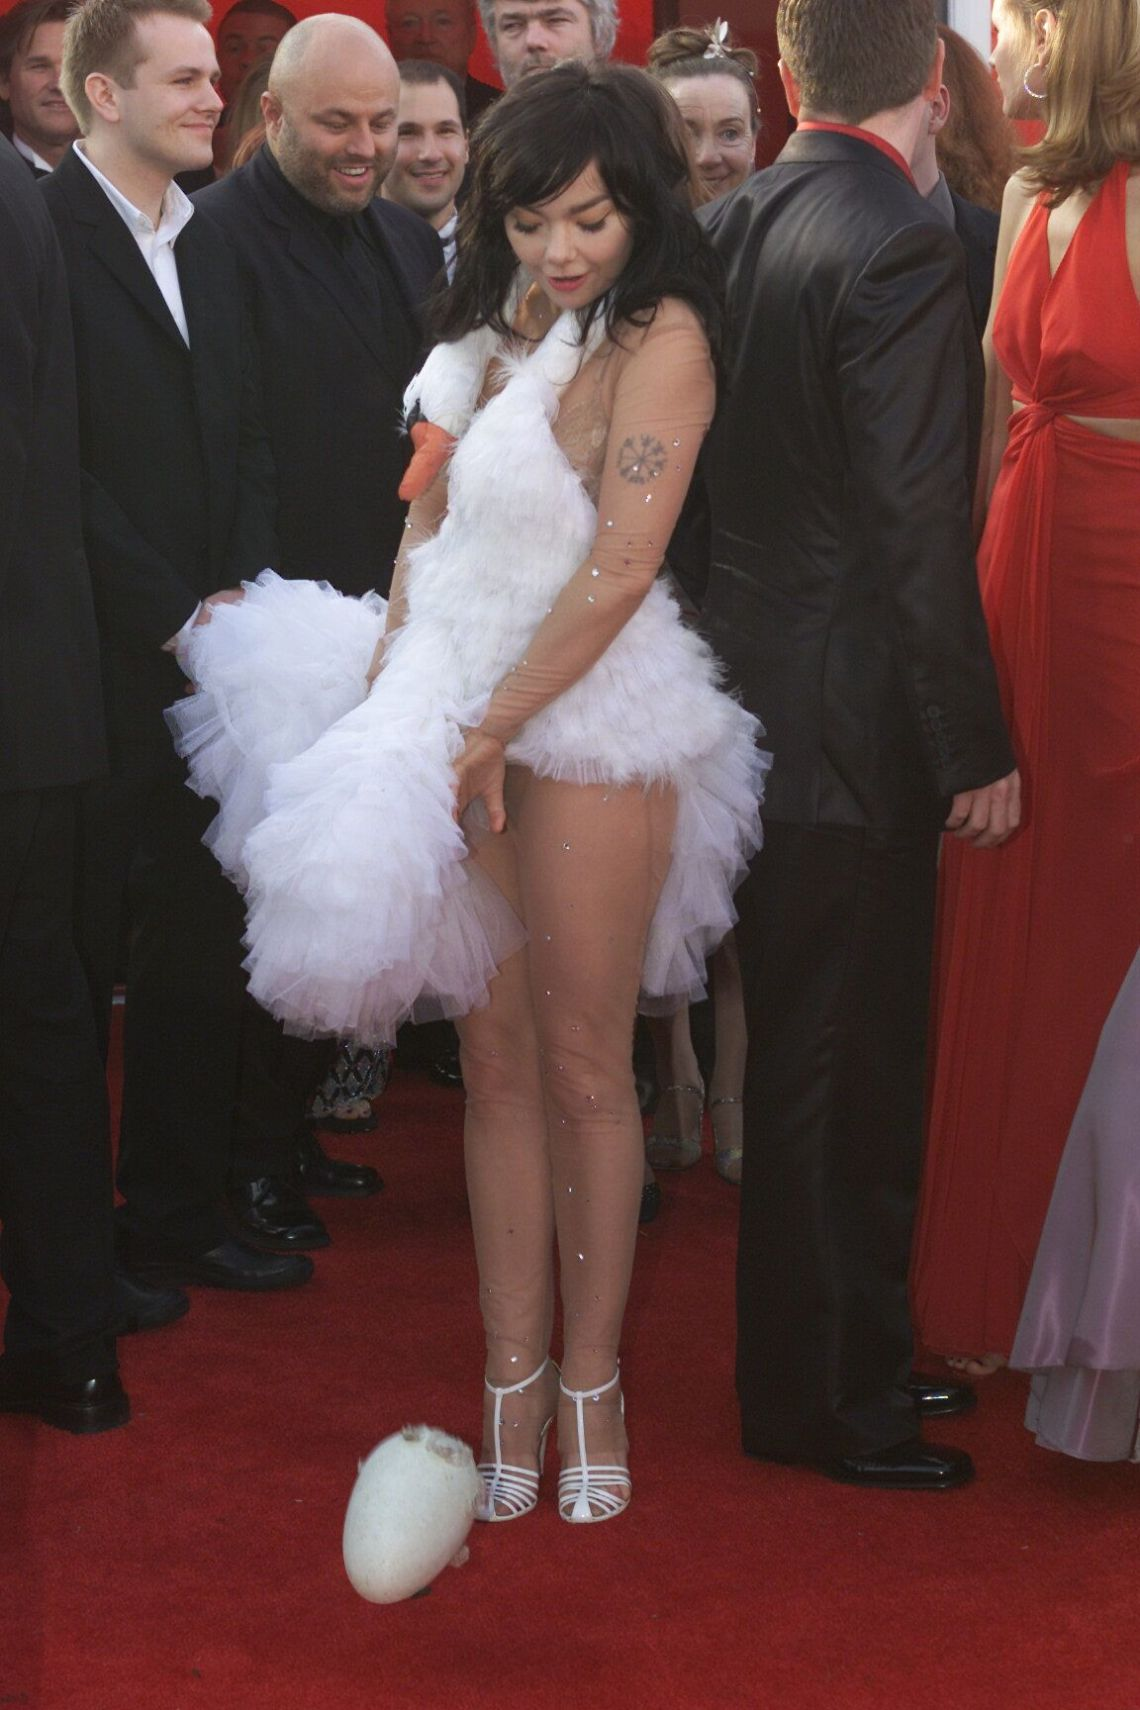 Well, she was never going to pass by unnoticed, was she?Björk was nominated for her first Oscar in 2001, for her contribution to the Dancer In The Dark soundtrack, and made headlines for her swan-inspired dress, which included dropping eggs along the red carpet.